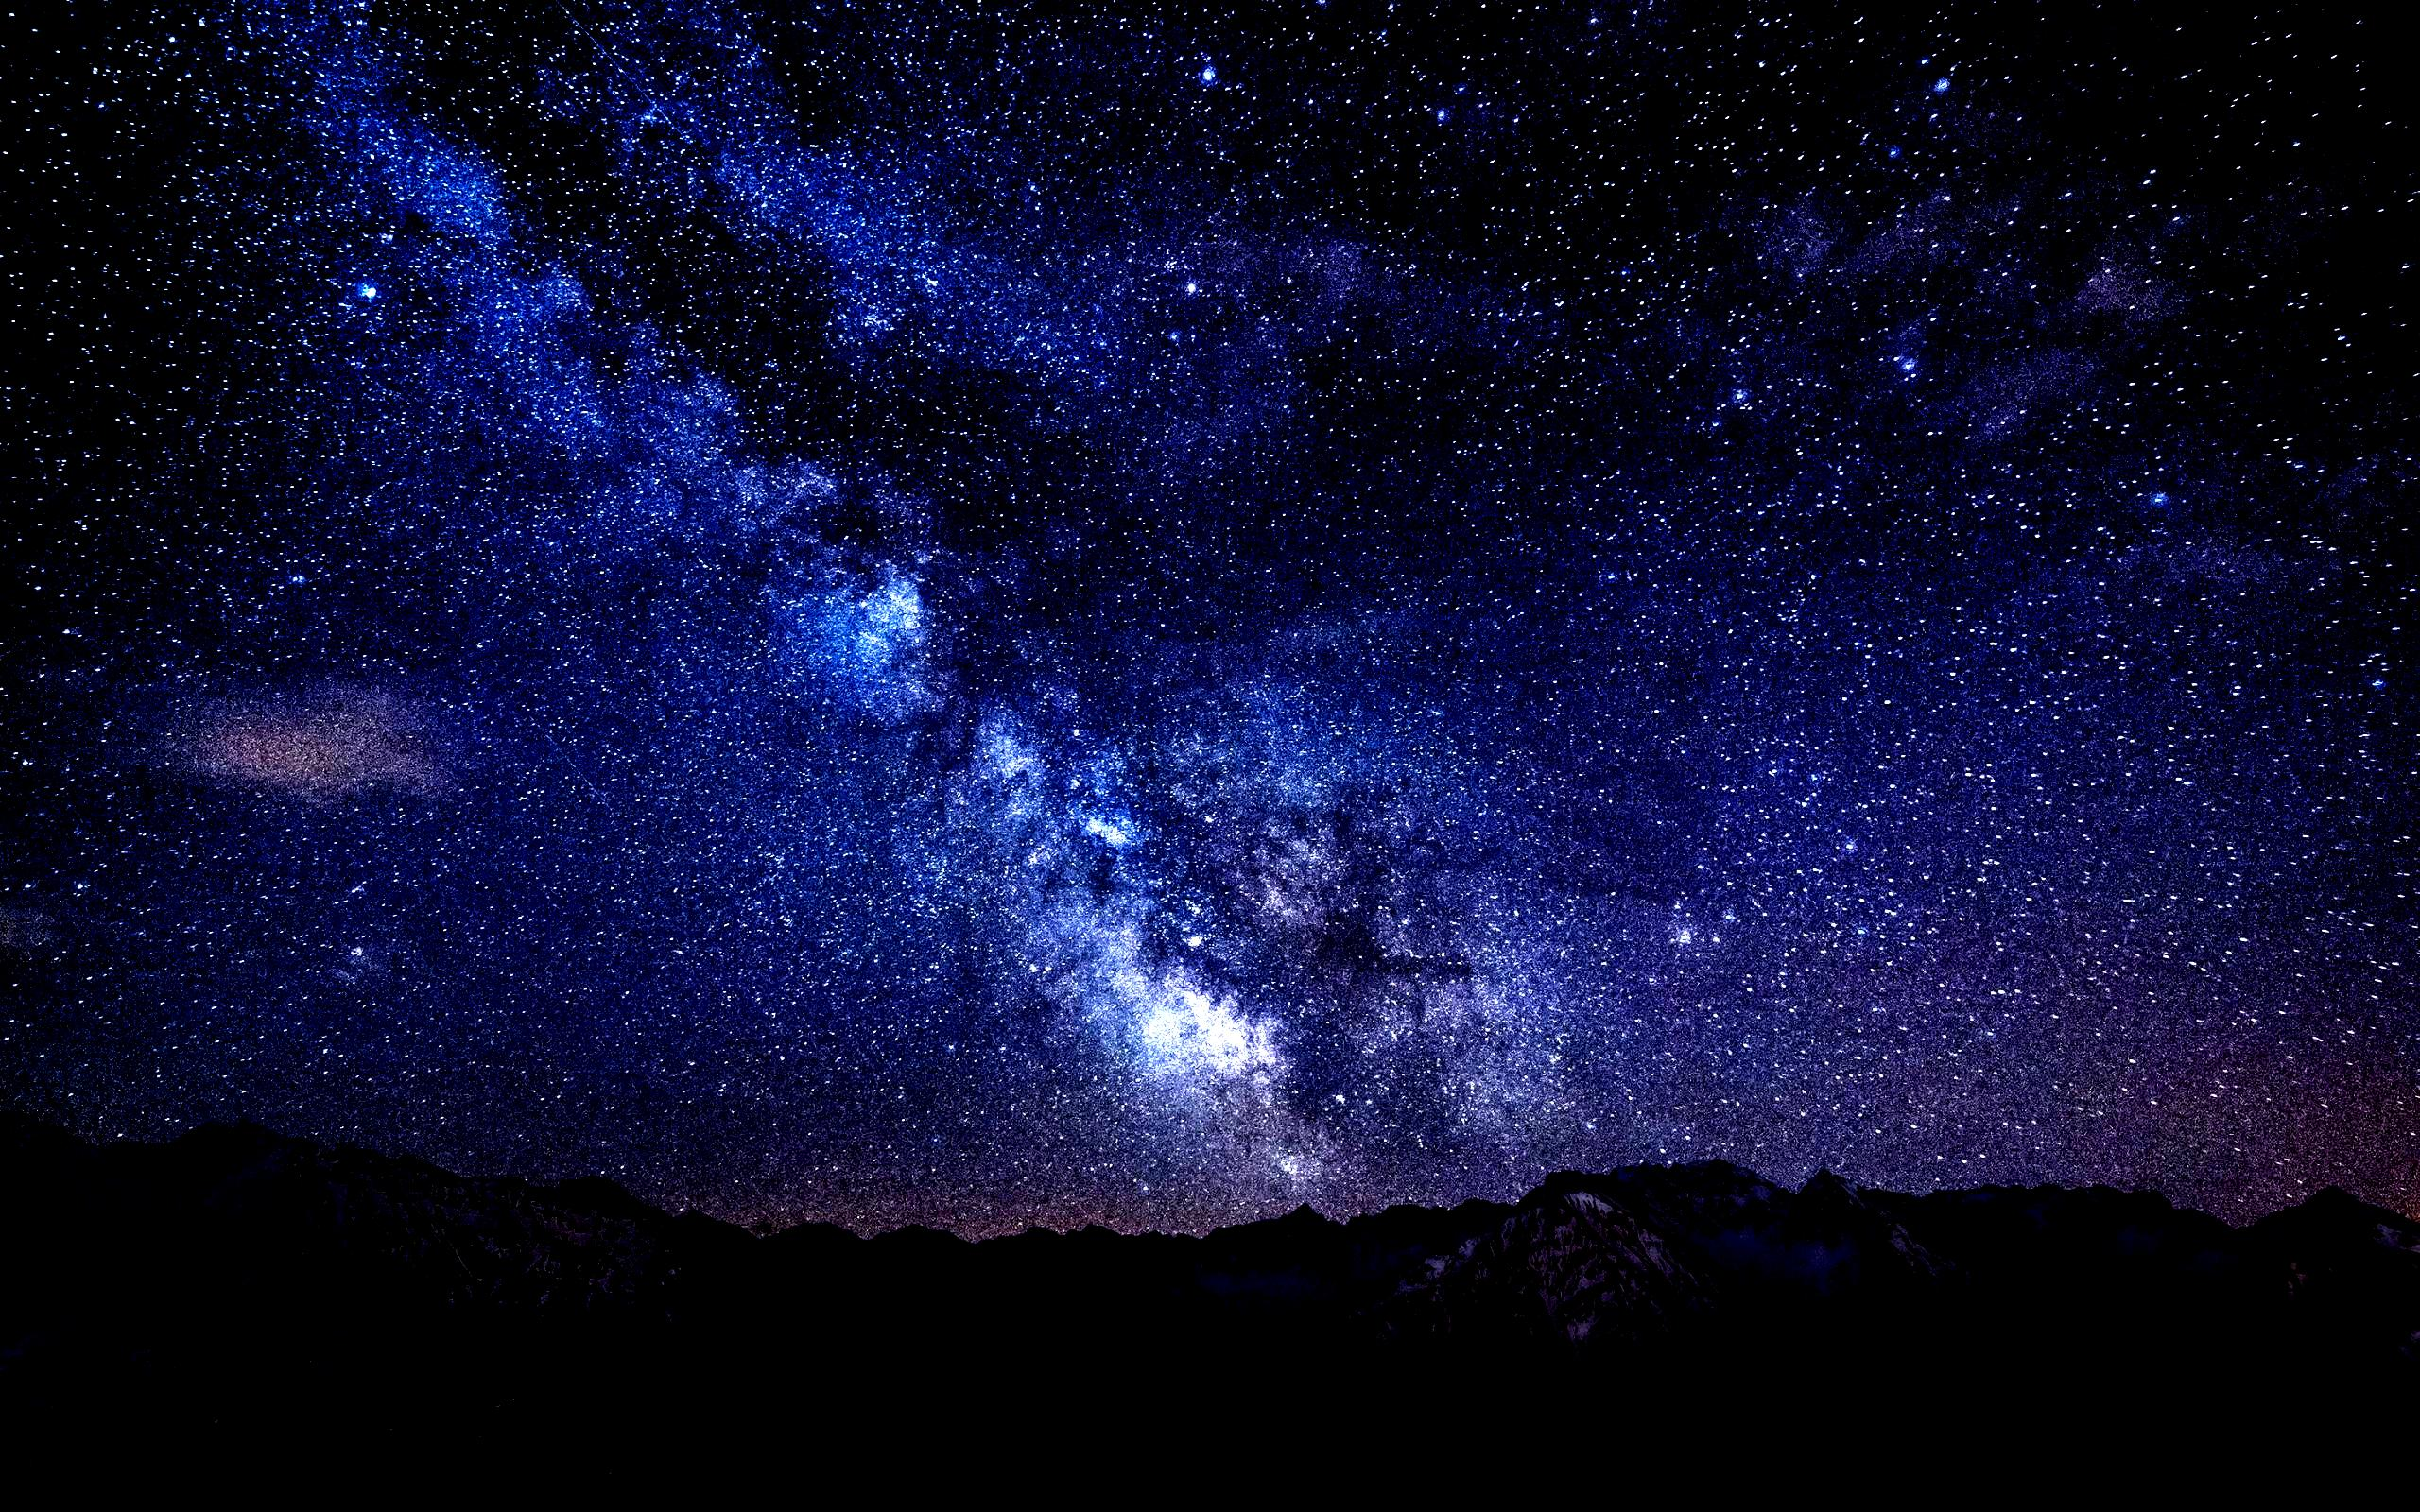 Free Download 33 Units Wallpapers Of Night Sky High Resolution Wallpapers 2560x1600 For Your Desktop Mobile Tablet Explore 64 1080p Resolution Wallpaper High Definition Wallpapers 1080p Hd Space Wallpapers